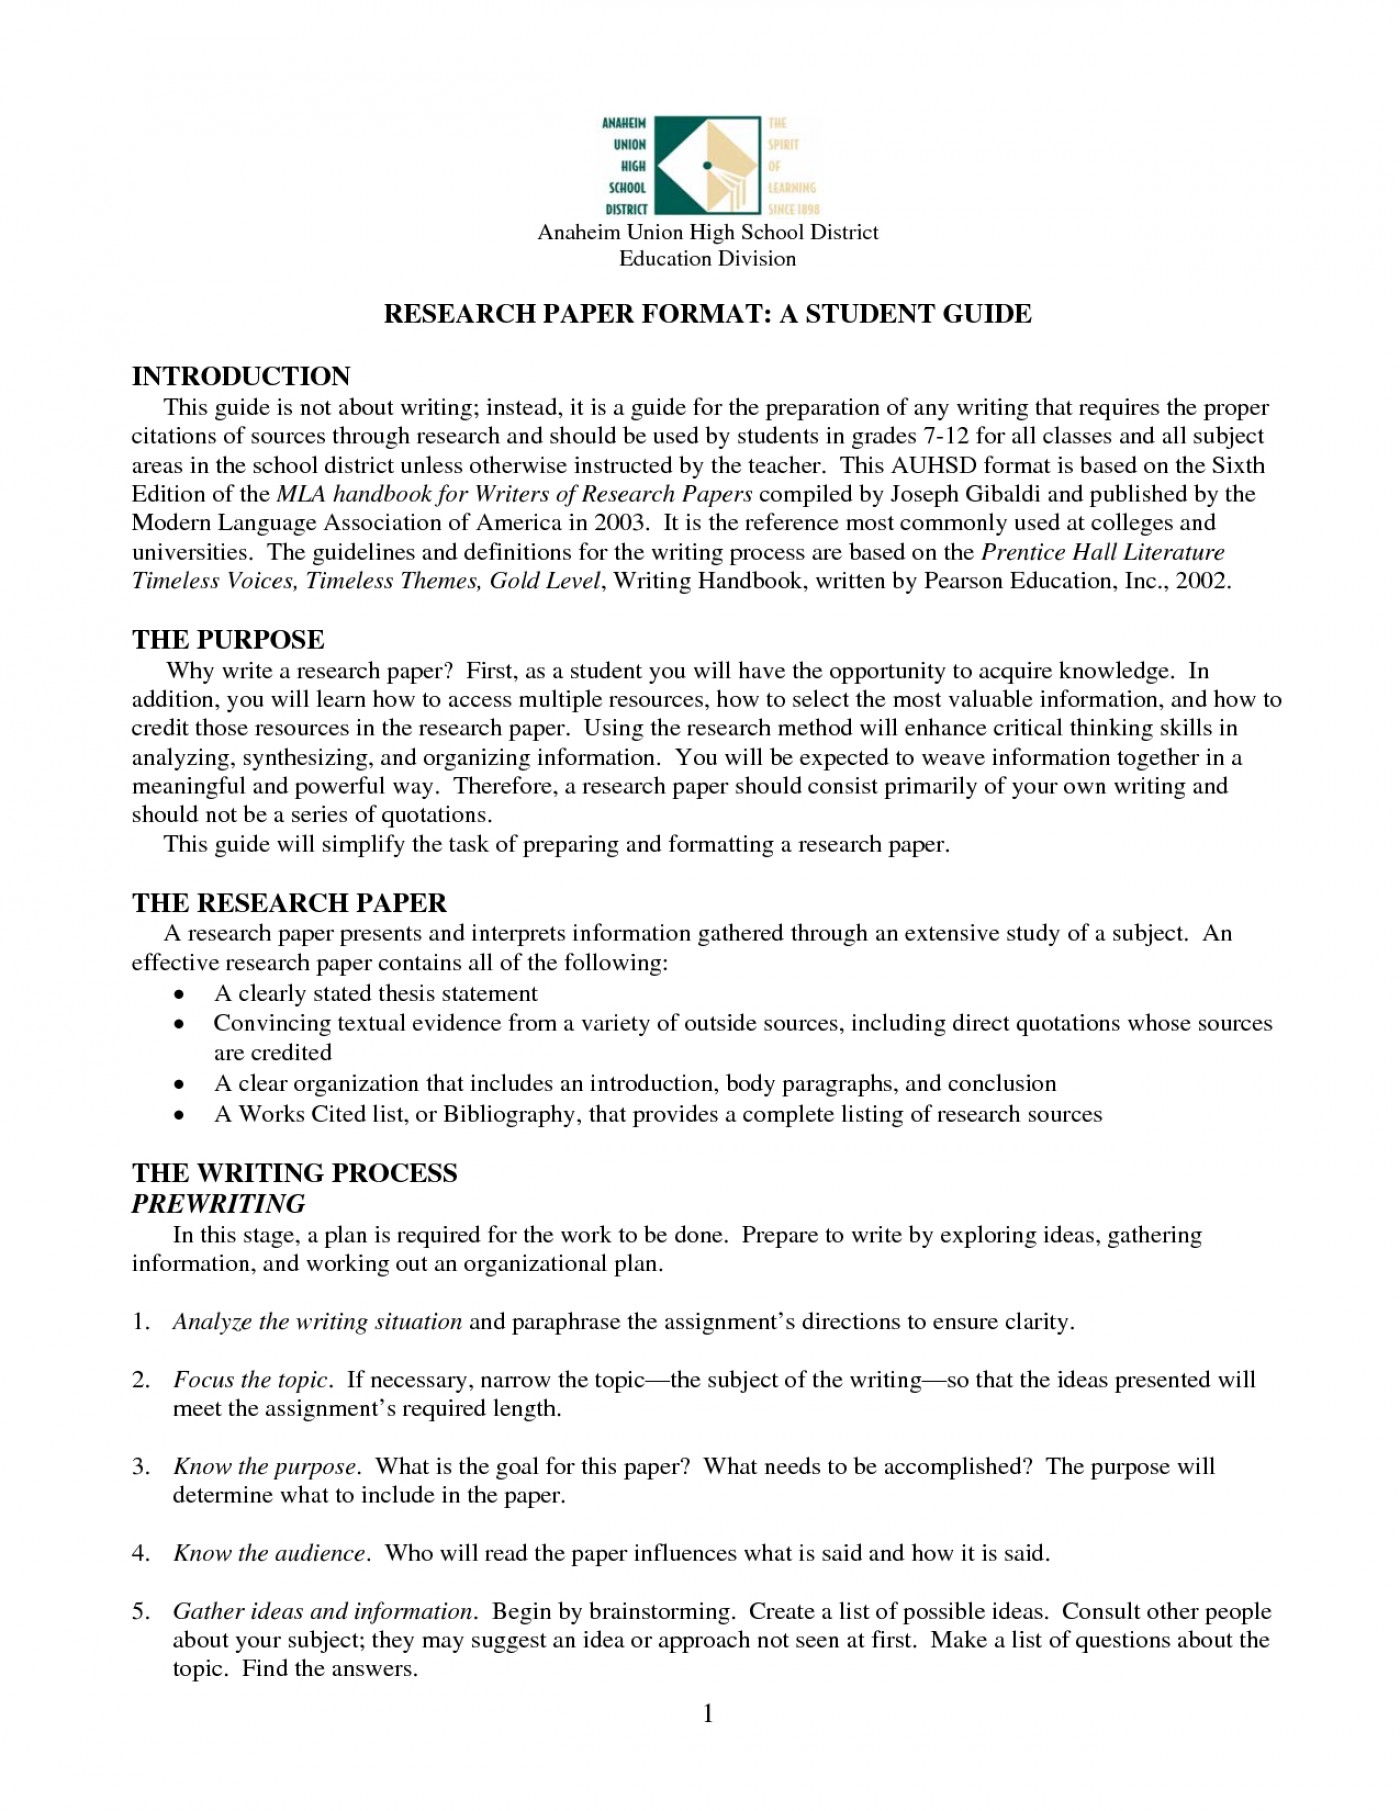 018 Best Research Paper Topics Ideas Of Outline Nice For Papers High School Stupendous Reddit In Education College Student 1400